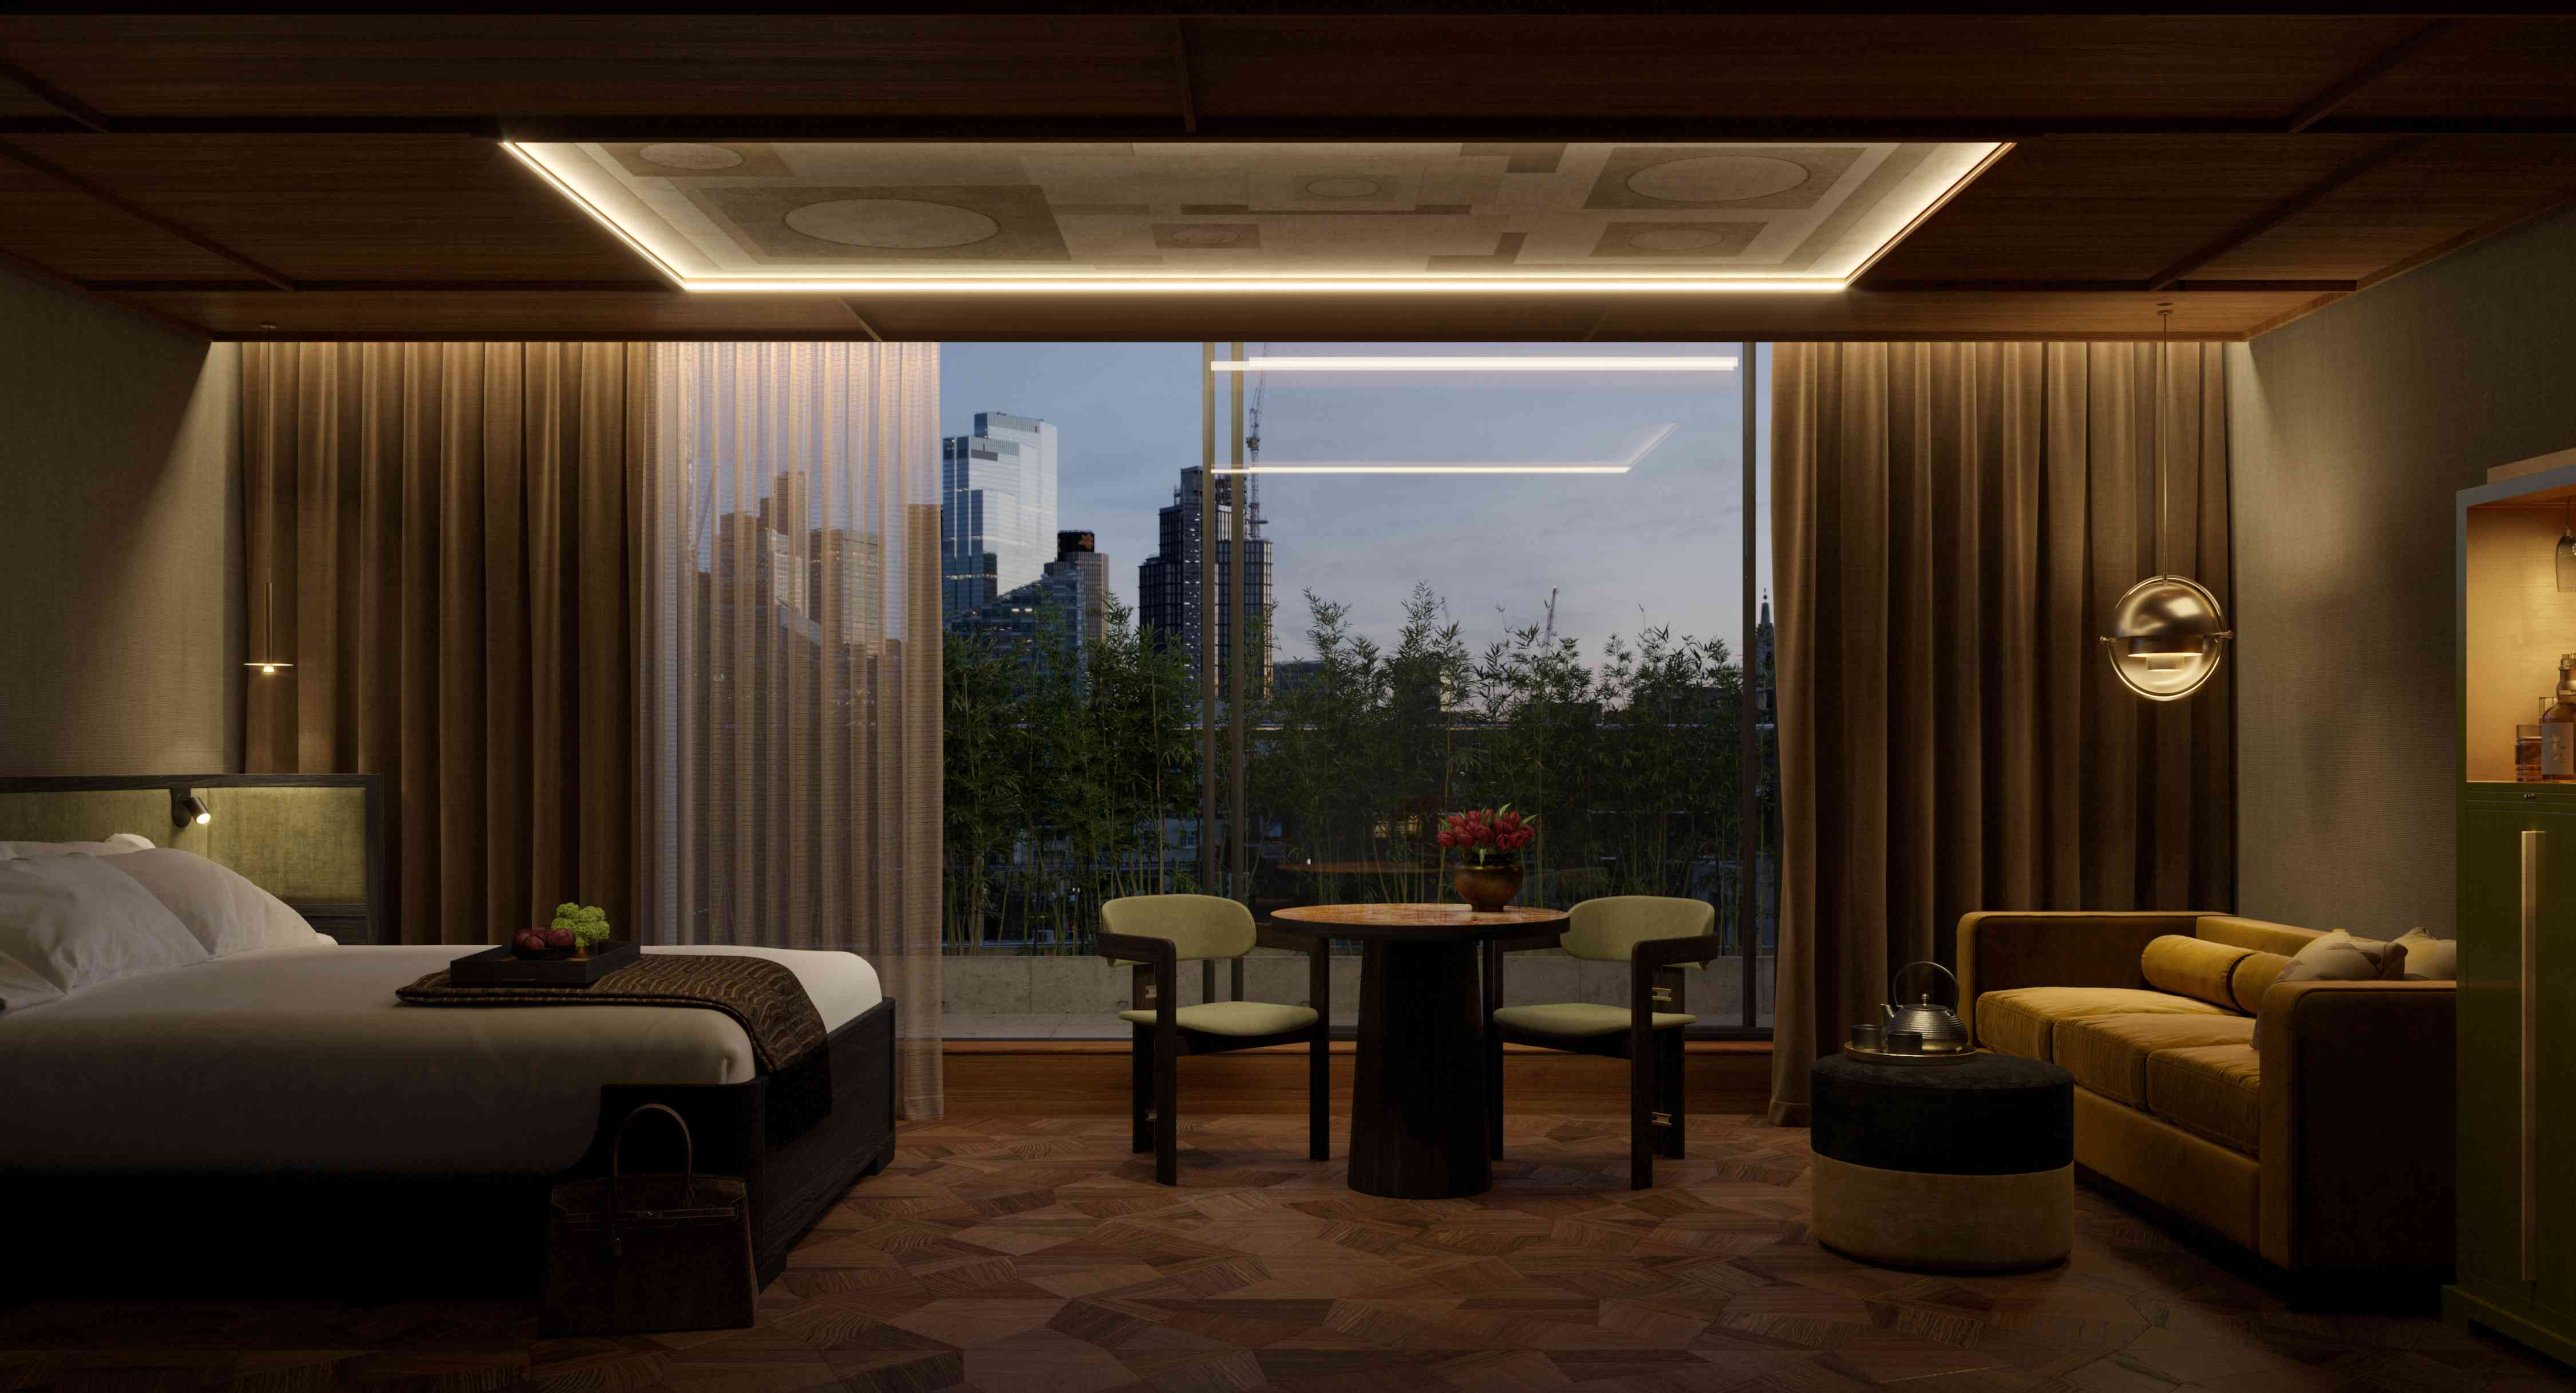 Penthouse bedroom at Nobu Shoreditch with views of London